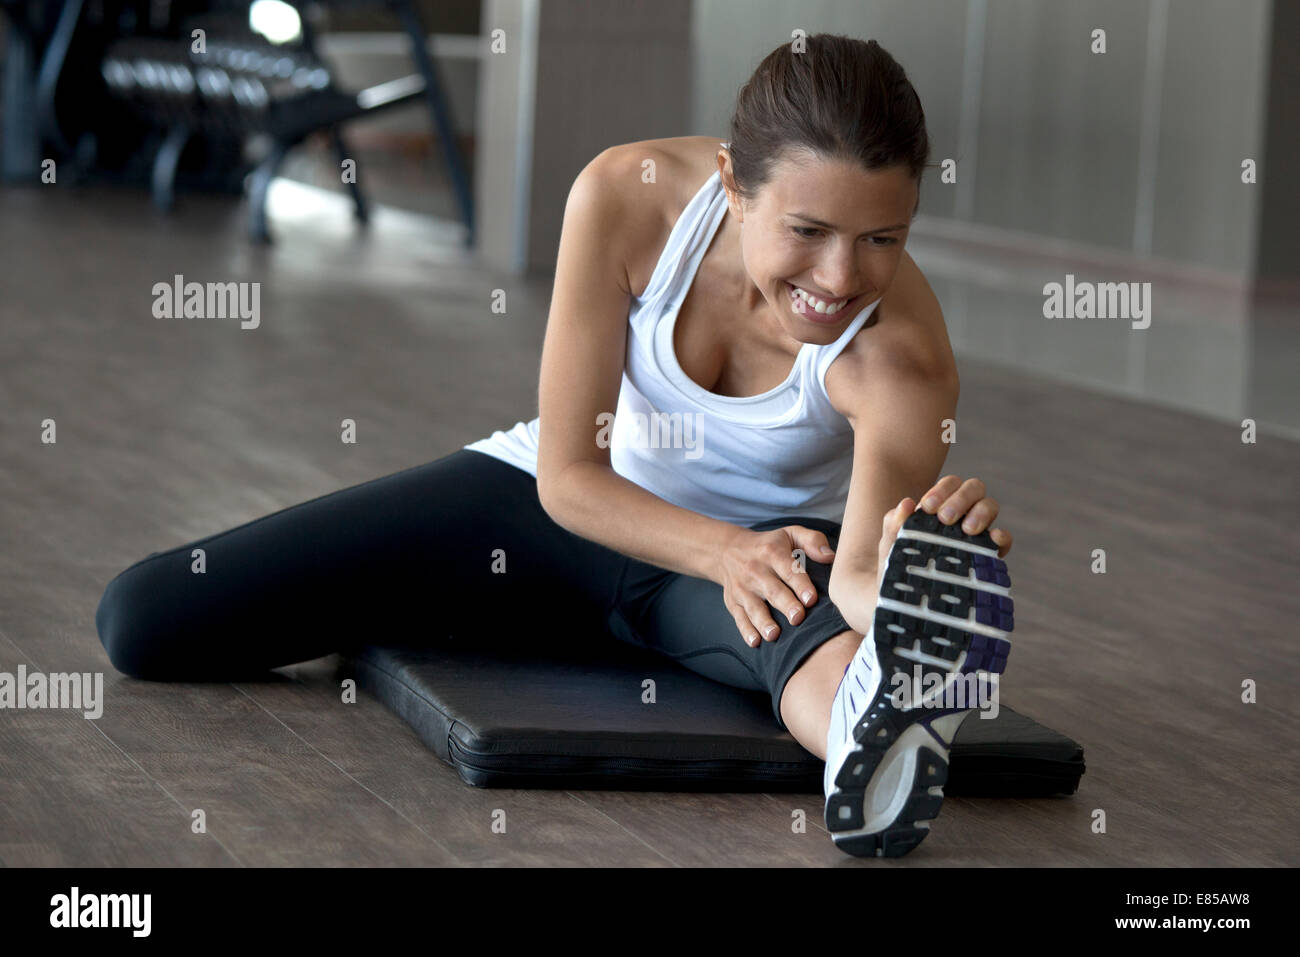 Warmup stretches help prevent injury while exercising - Stock Image